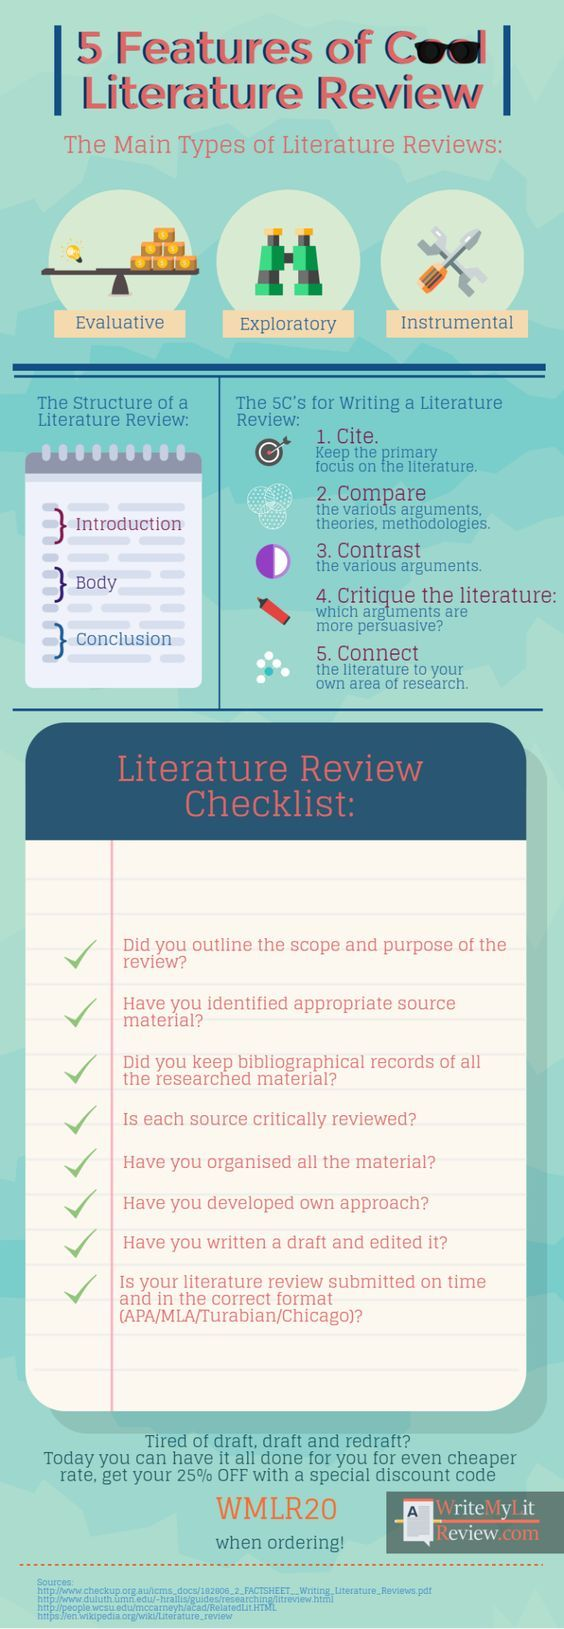 dissertation literature review checklist Research ethics review form a checklist using the following sections and headings should be completed for every research project that involves human participants.